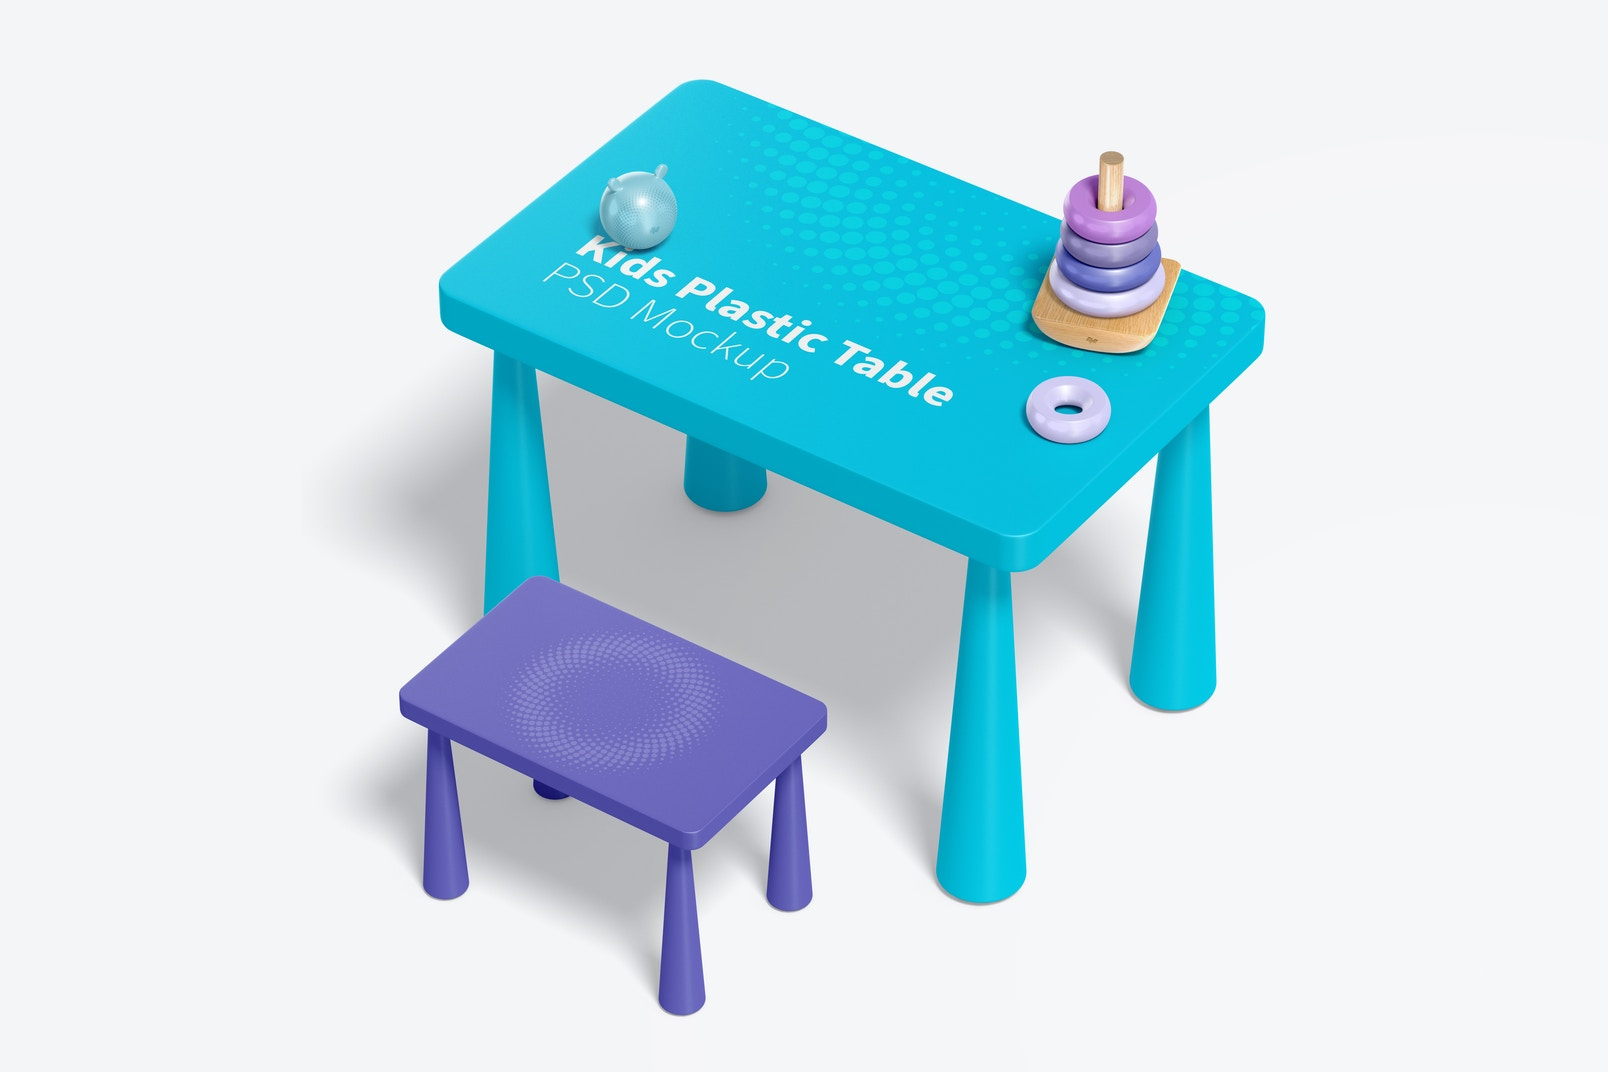 Kids Plastic Table Mockup, Right View